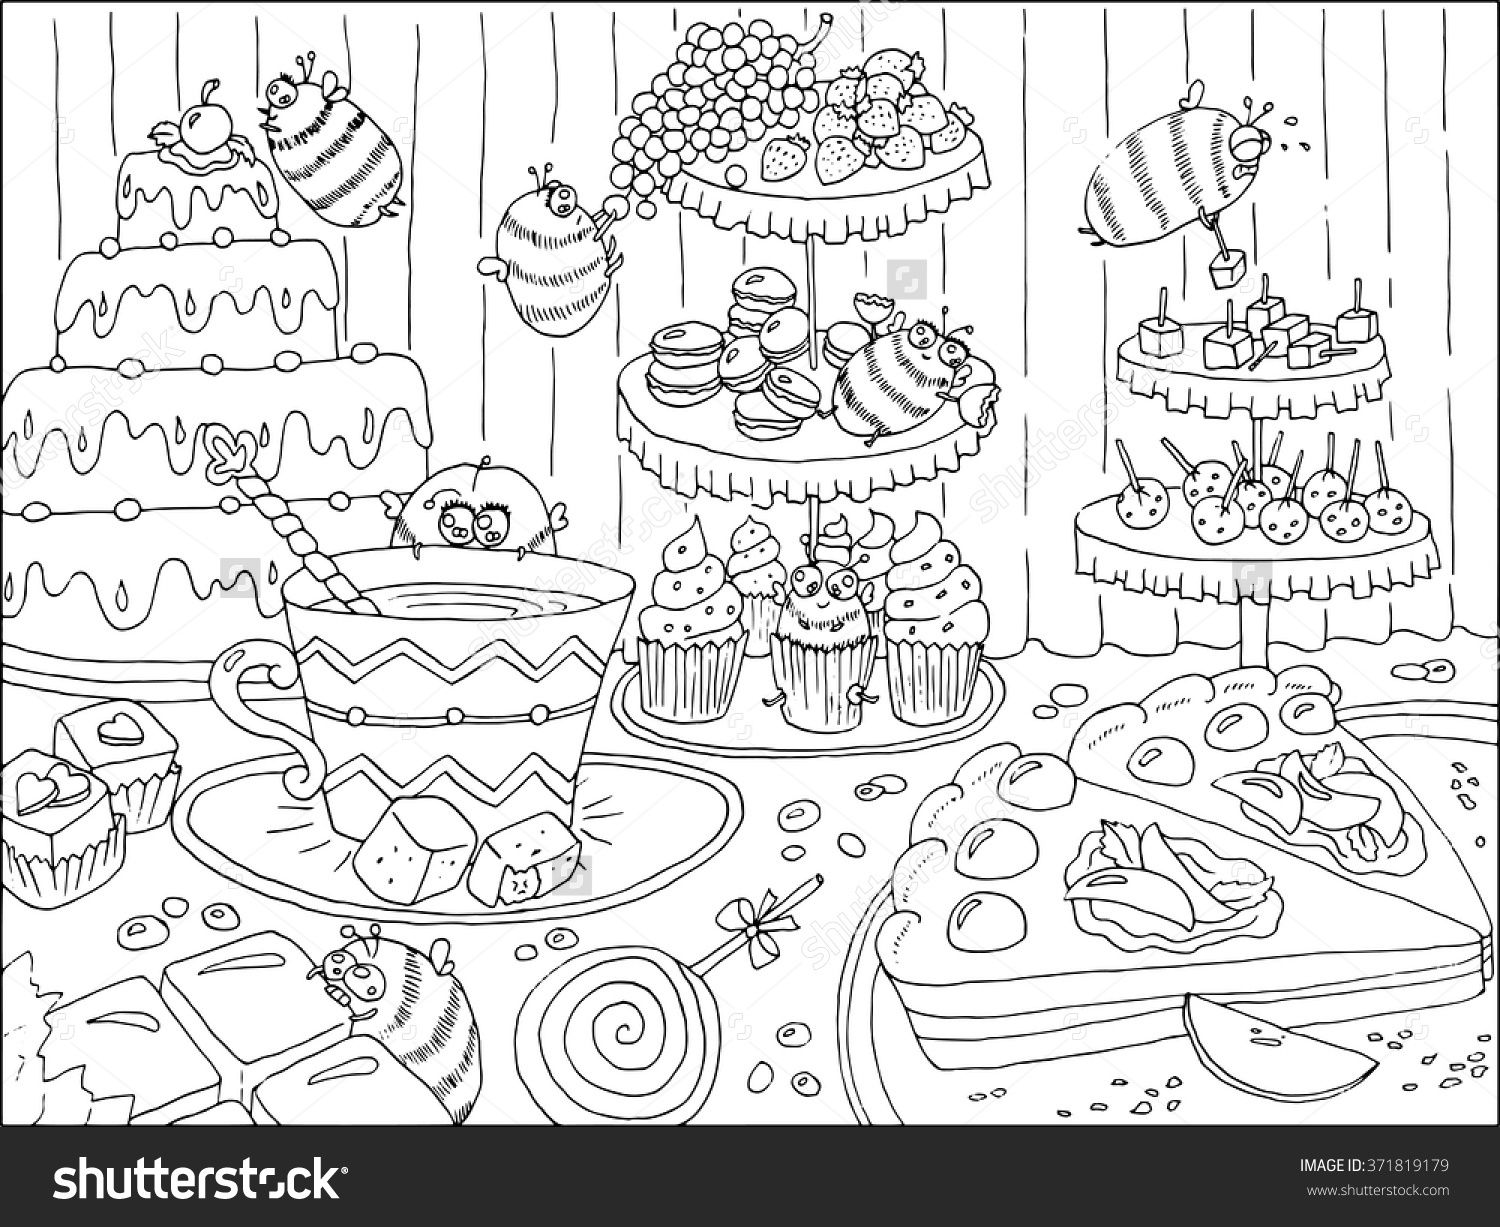 Black And White Hand Drawn Illustration With Funny Bees In Sweetshop Artwork With Cakes Sweets And Ca Coloring Books Drawing Illustration How To Draw Hands